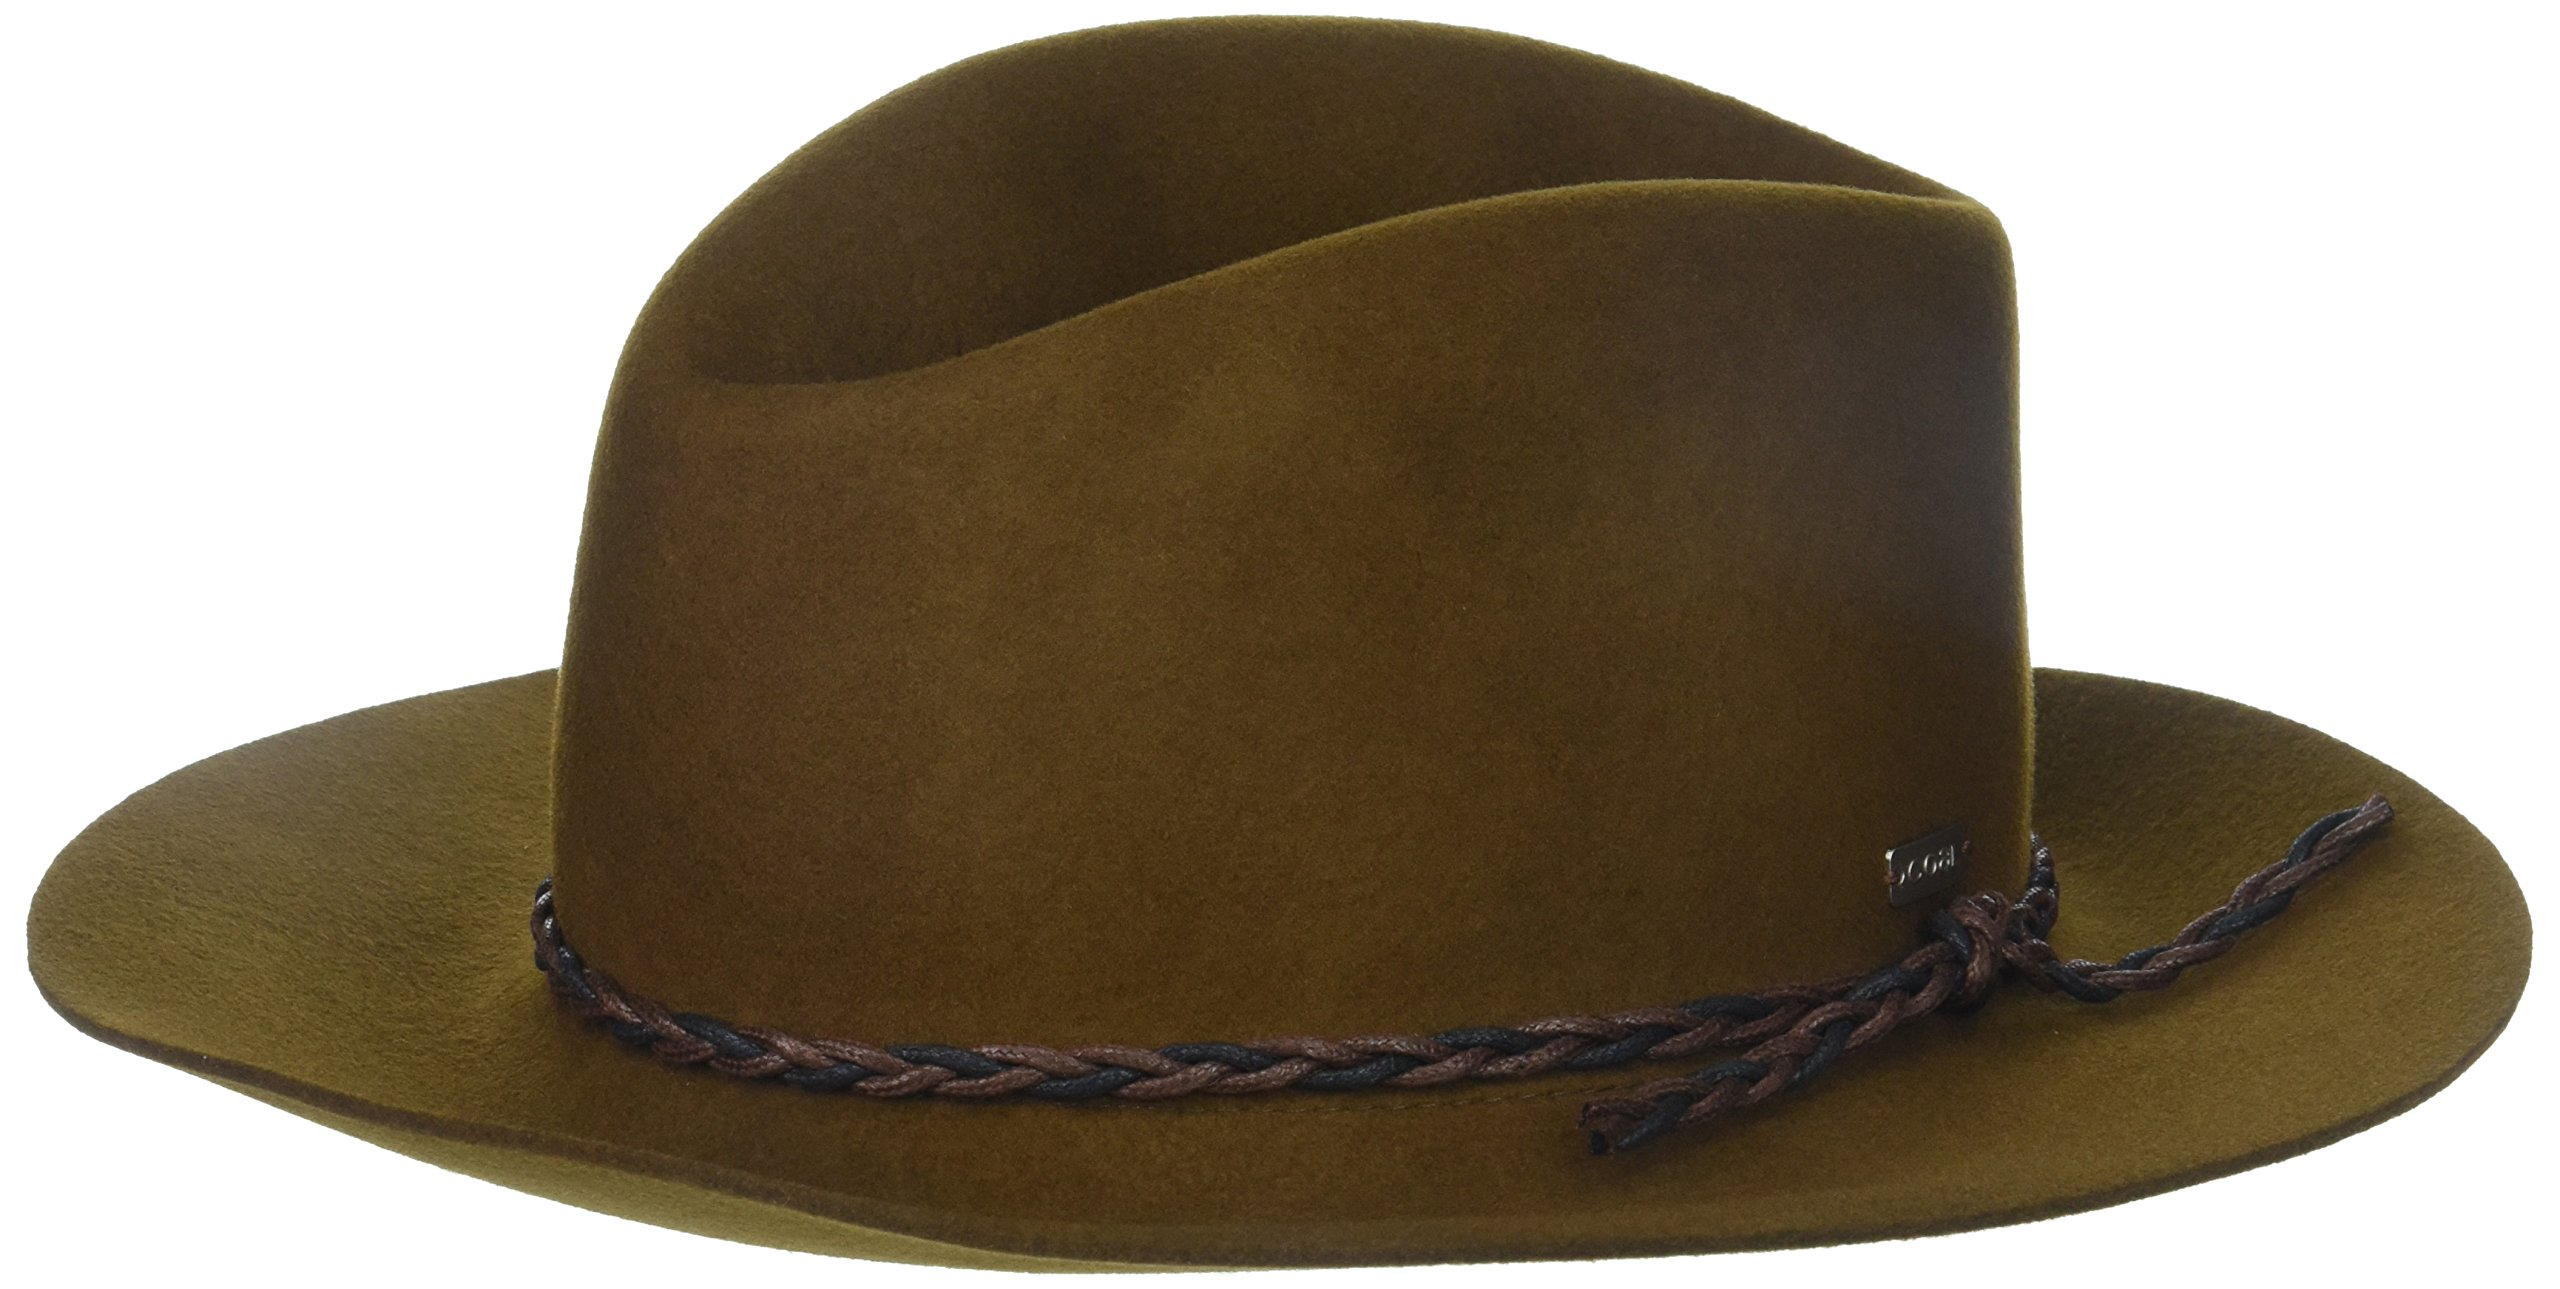 Coal Women's The Simone Crushable Wool Felt Cloche Hat with Asymmetrical Brim, Brown One Size